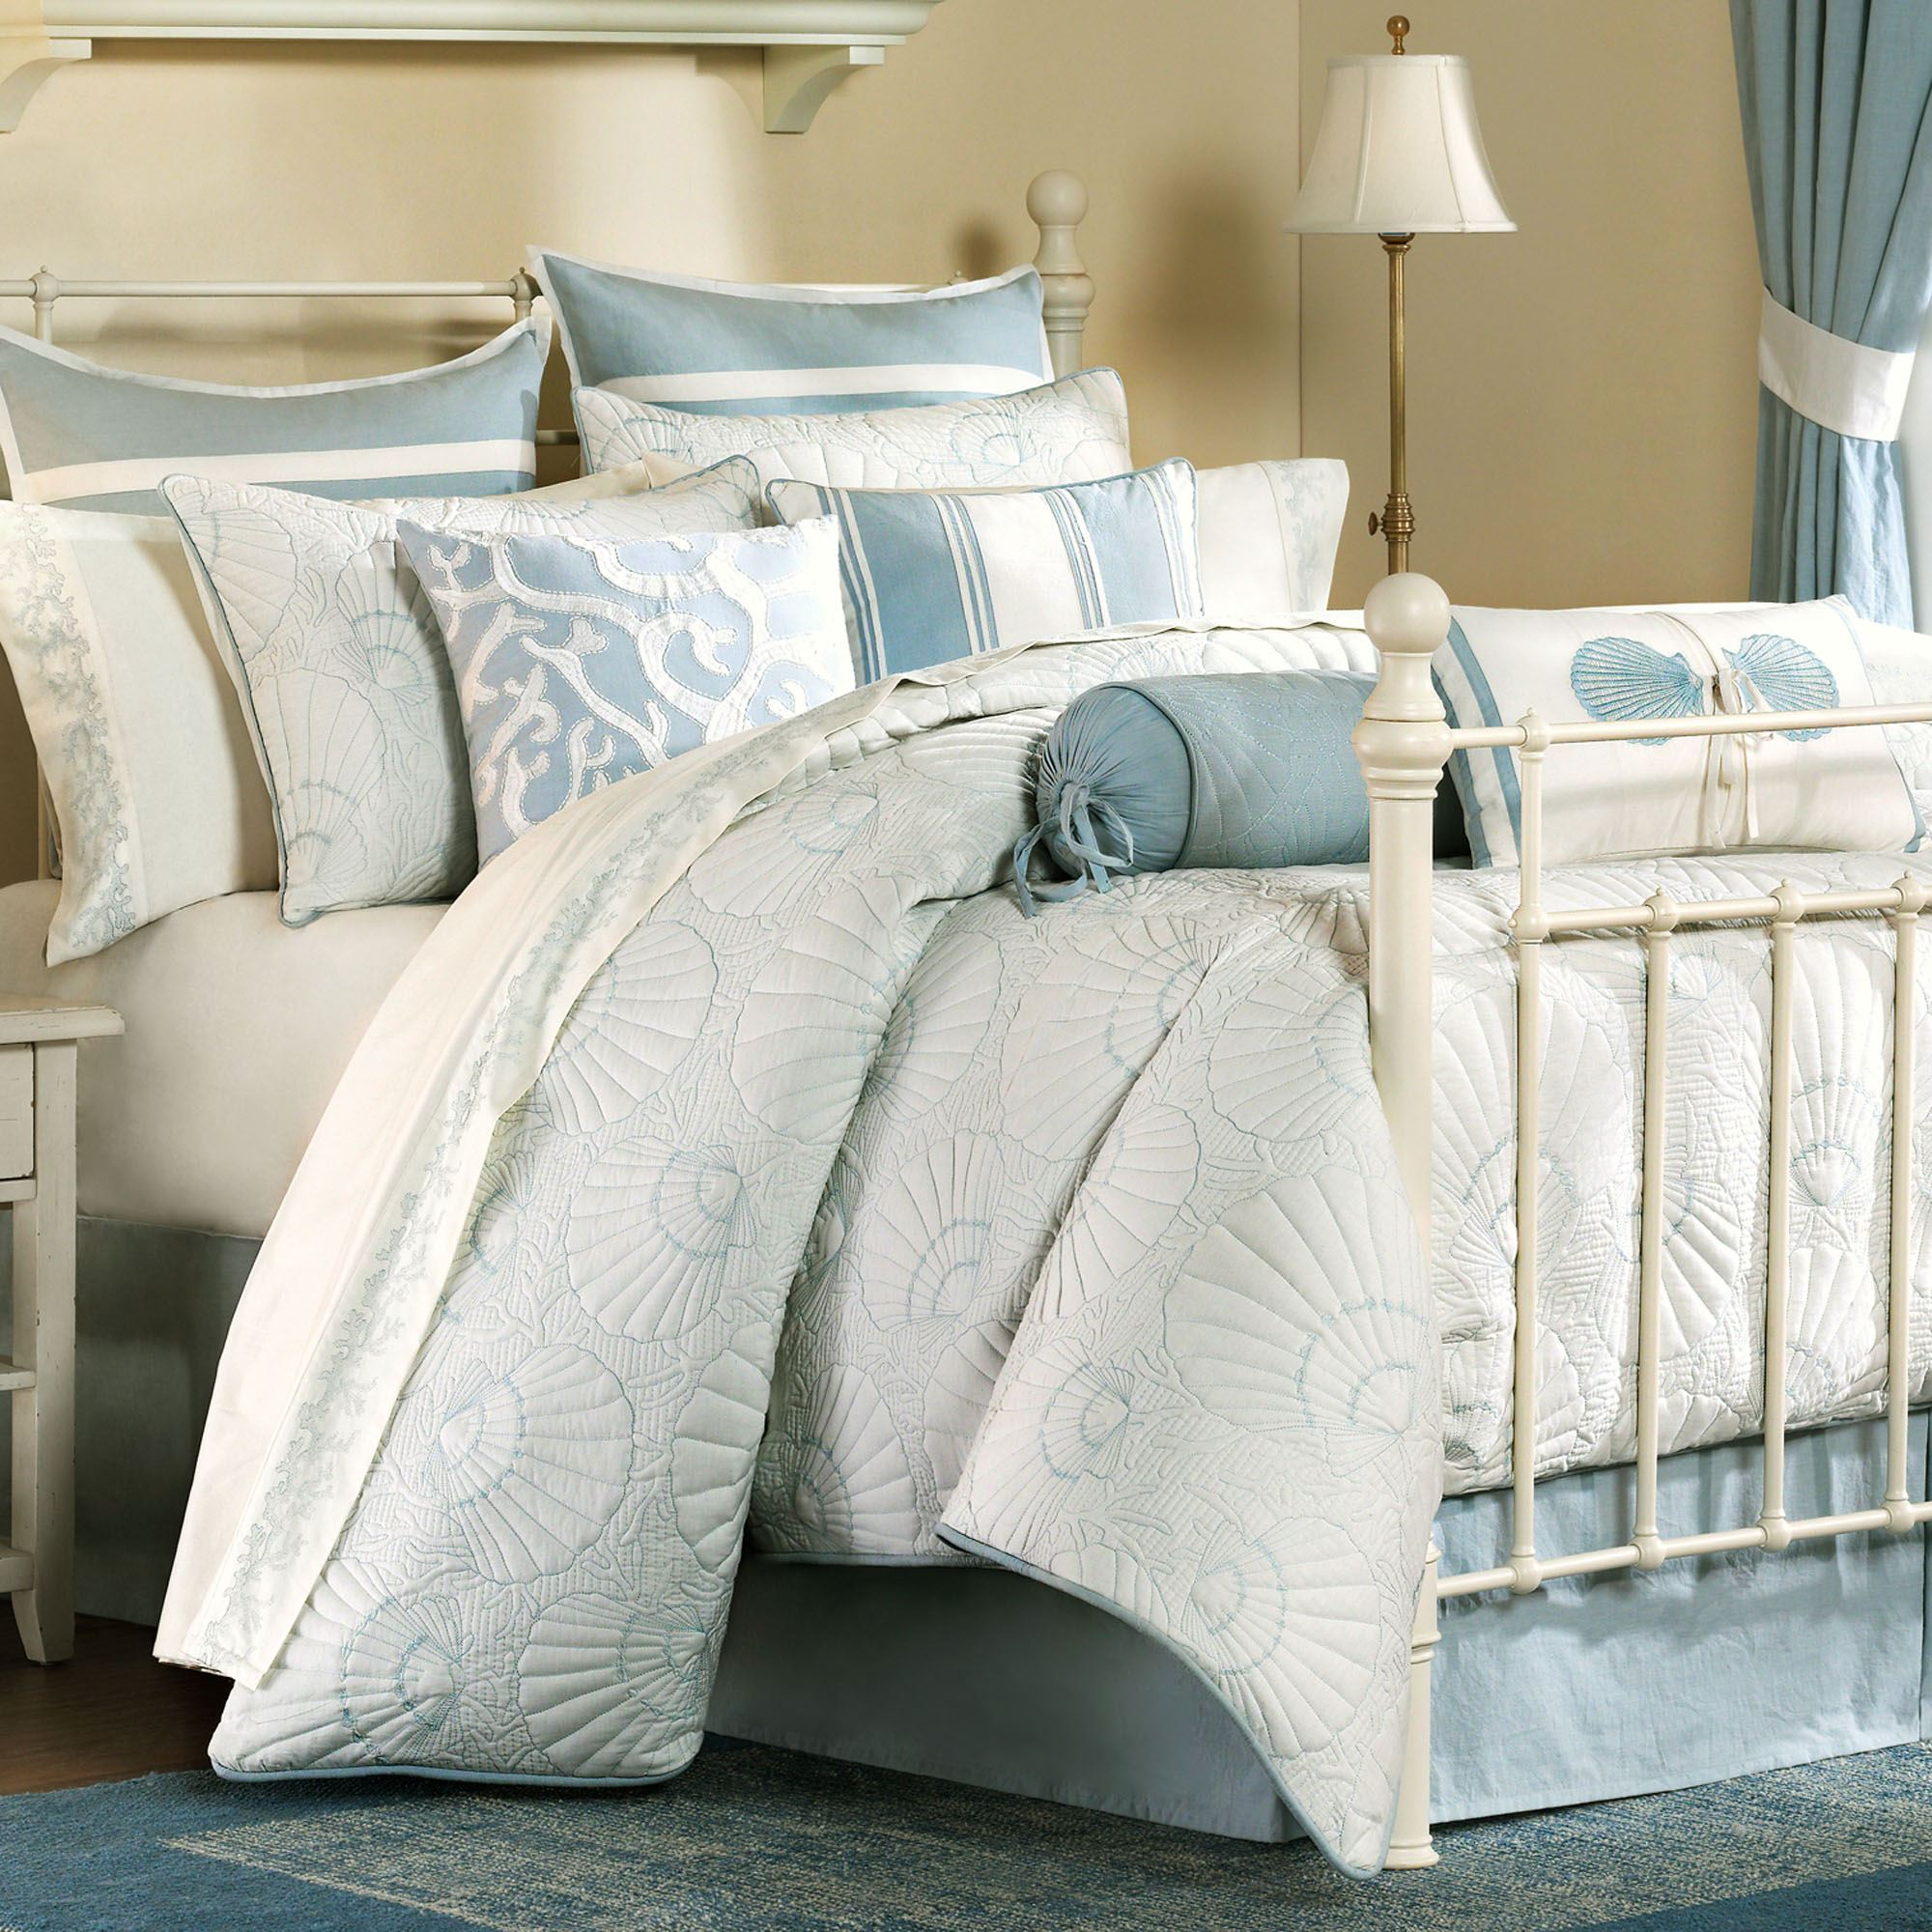 biltmore class comfort at concept of wayfair king new ensembles full comforter and sets bedding breathtaking pictures touch setscomforter luxery york comforters hotel size